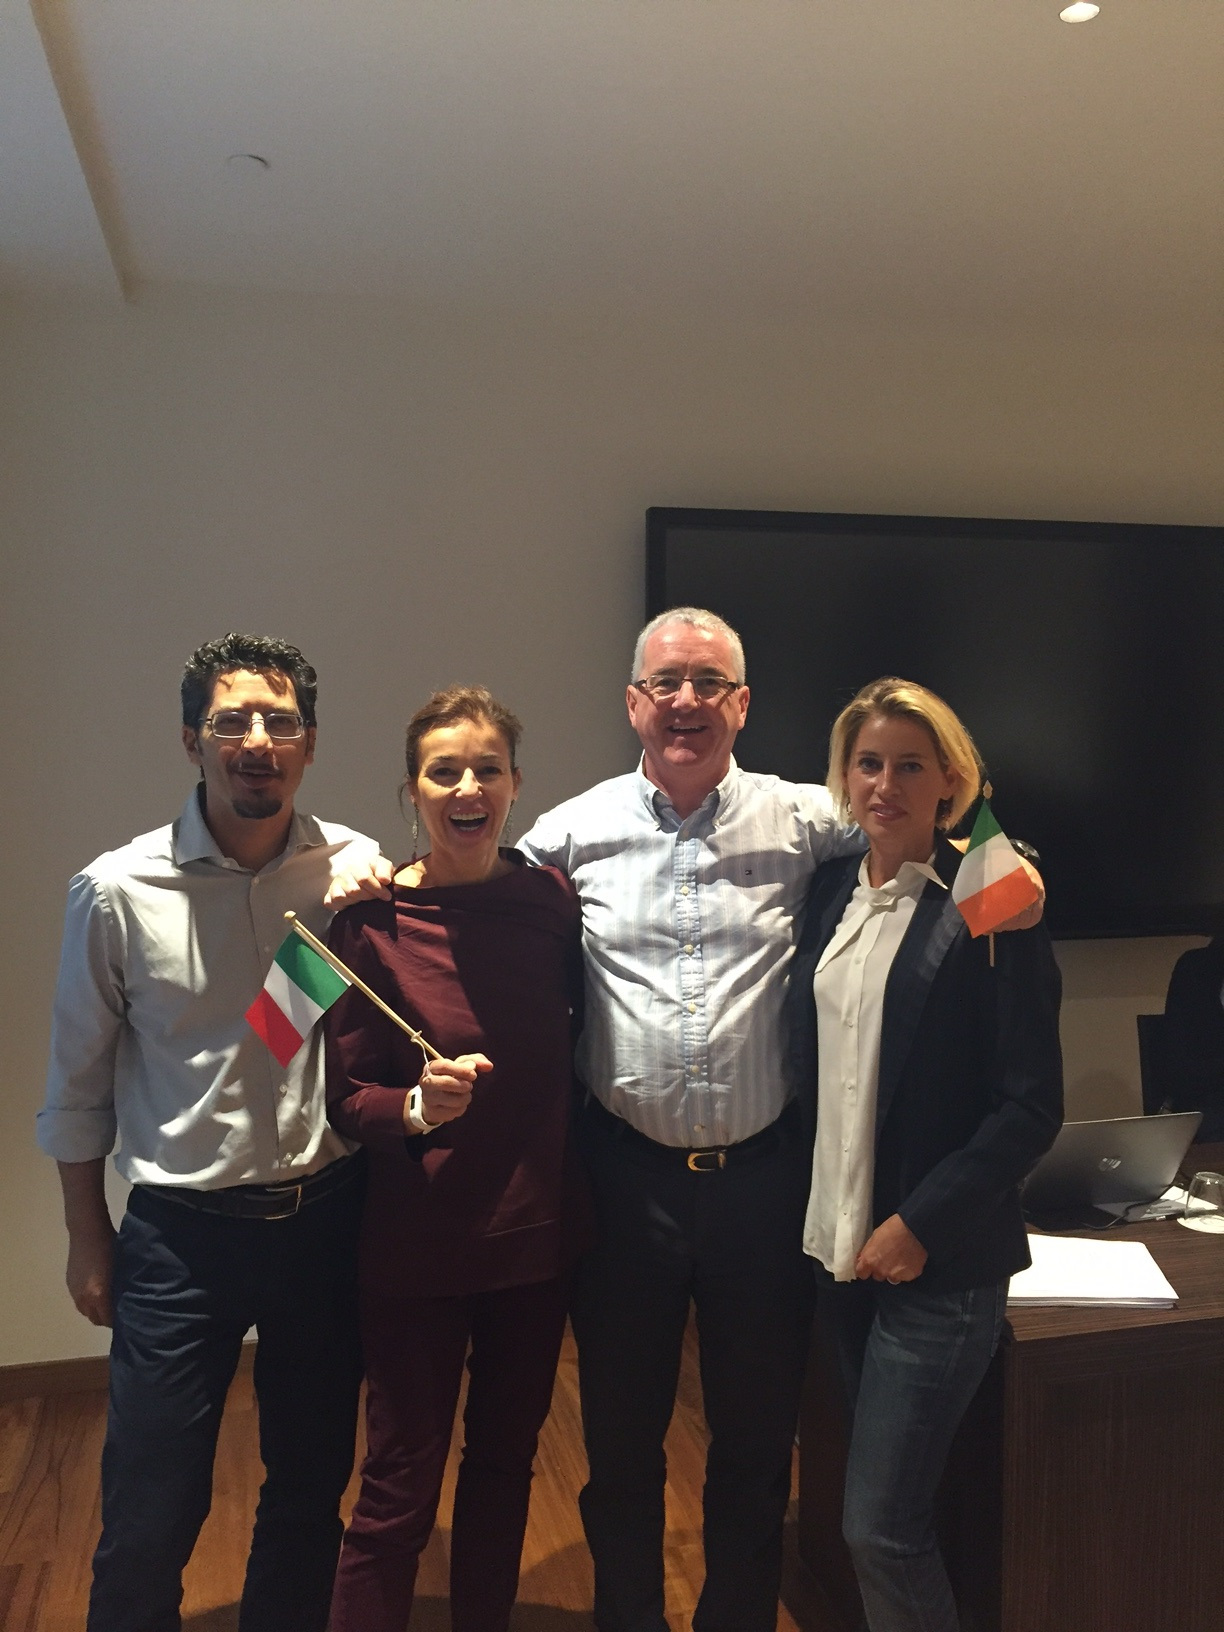 Photo shows Nicola Mantovanelli, Laura Cavalieri, Ken Murphy & Valentina Grimaldi of Pharmapoint Italy who hosted the INRALS General Assembly in Milan October 2016.